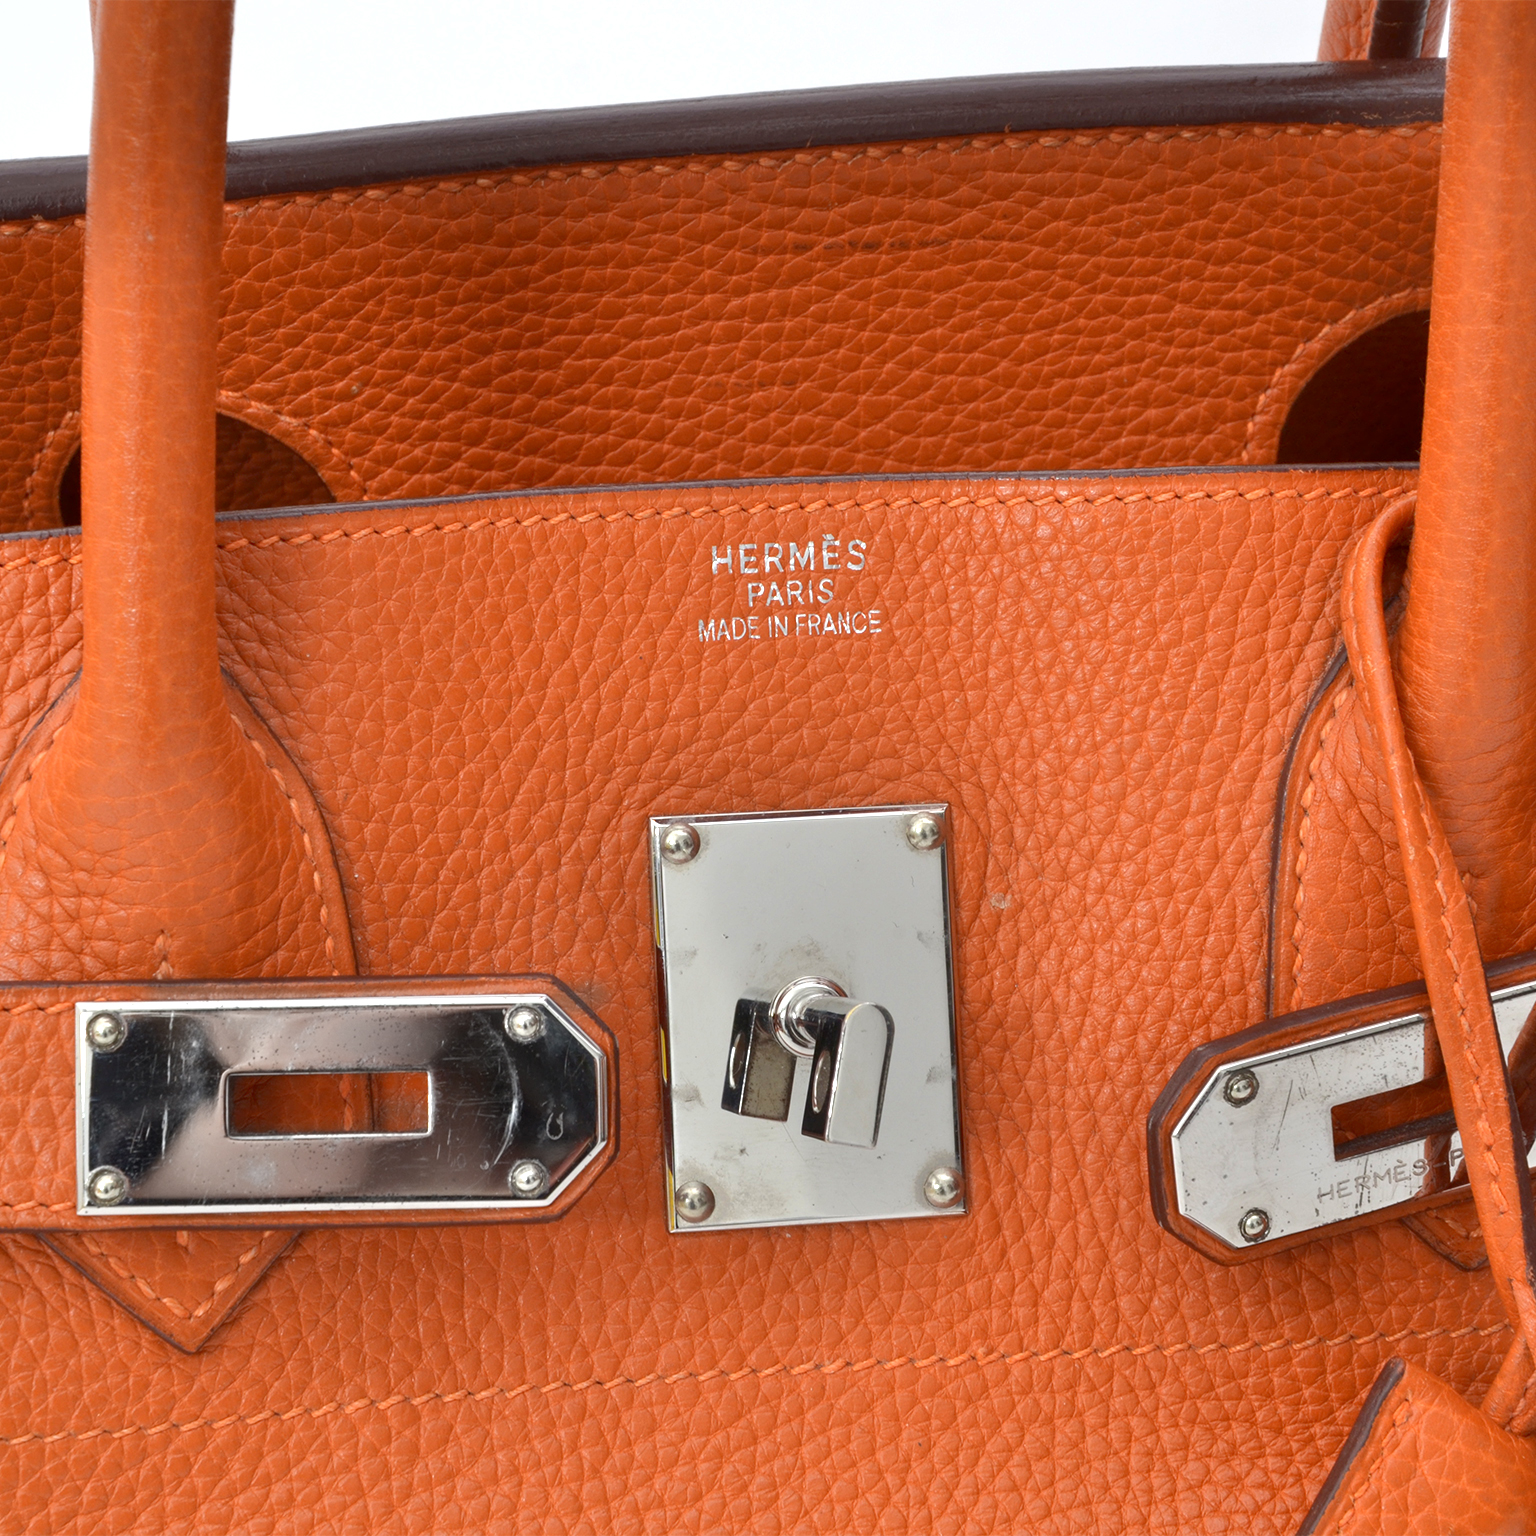 66c2fb872742 ... Hermès Birkin Shoulder Bag PHW Pumpkin Orange Secondhand designer  handbag for sale online labellov